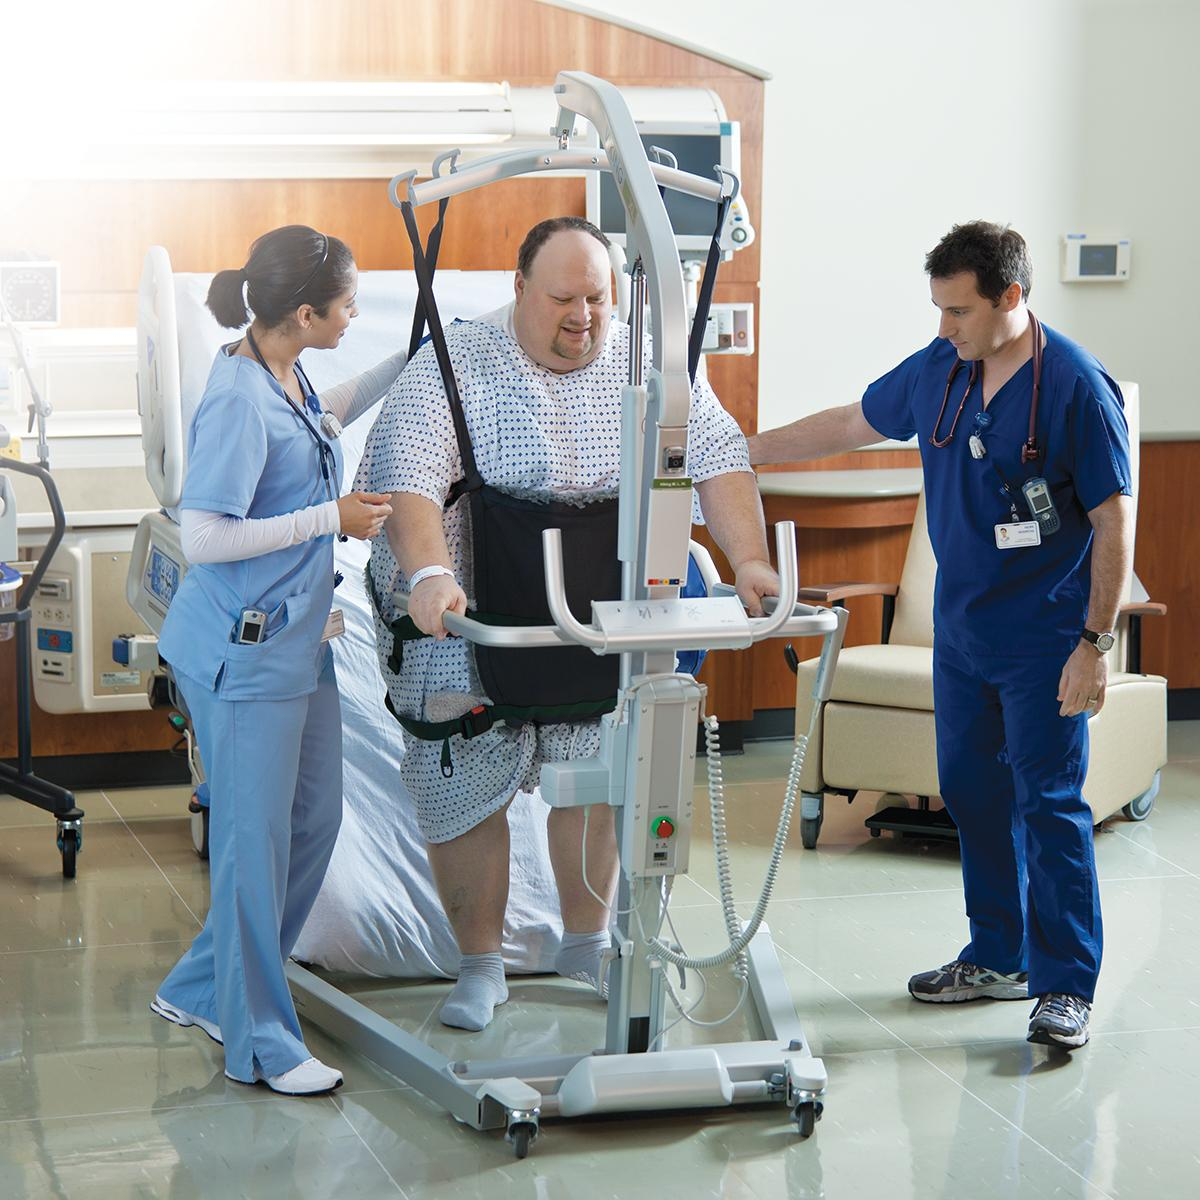 A patient is safely supported by his clinicians and a Viking XL mobile lift while exiting a TotalCare Bariatric Plus Hospital Bed.